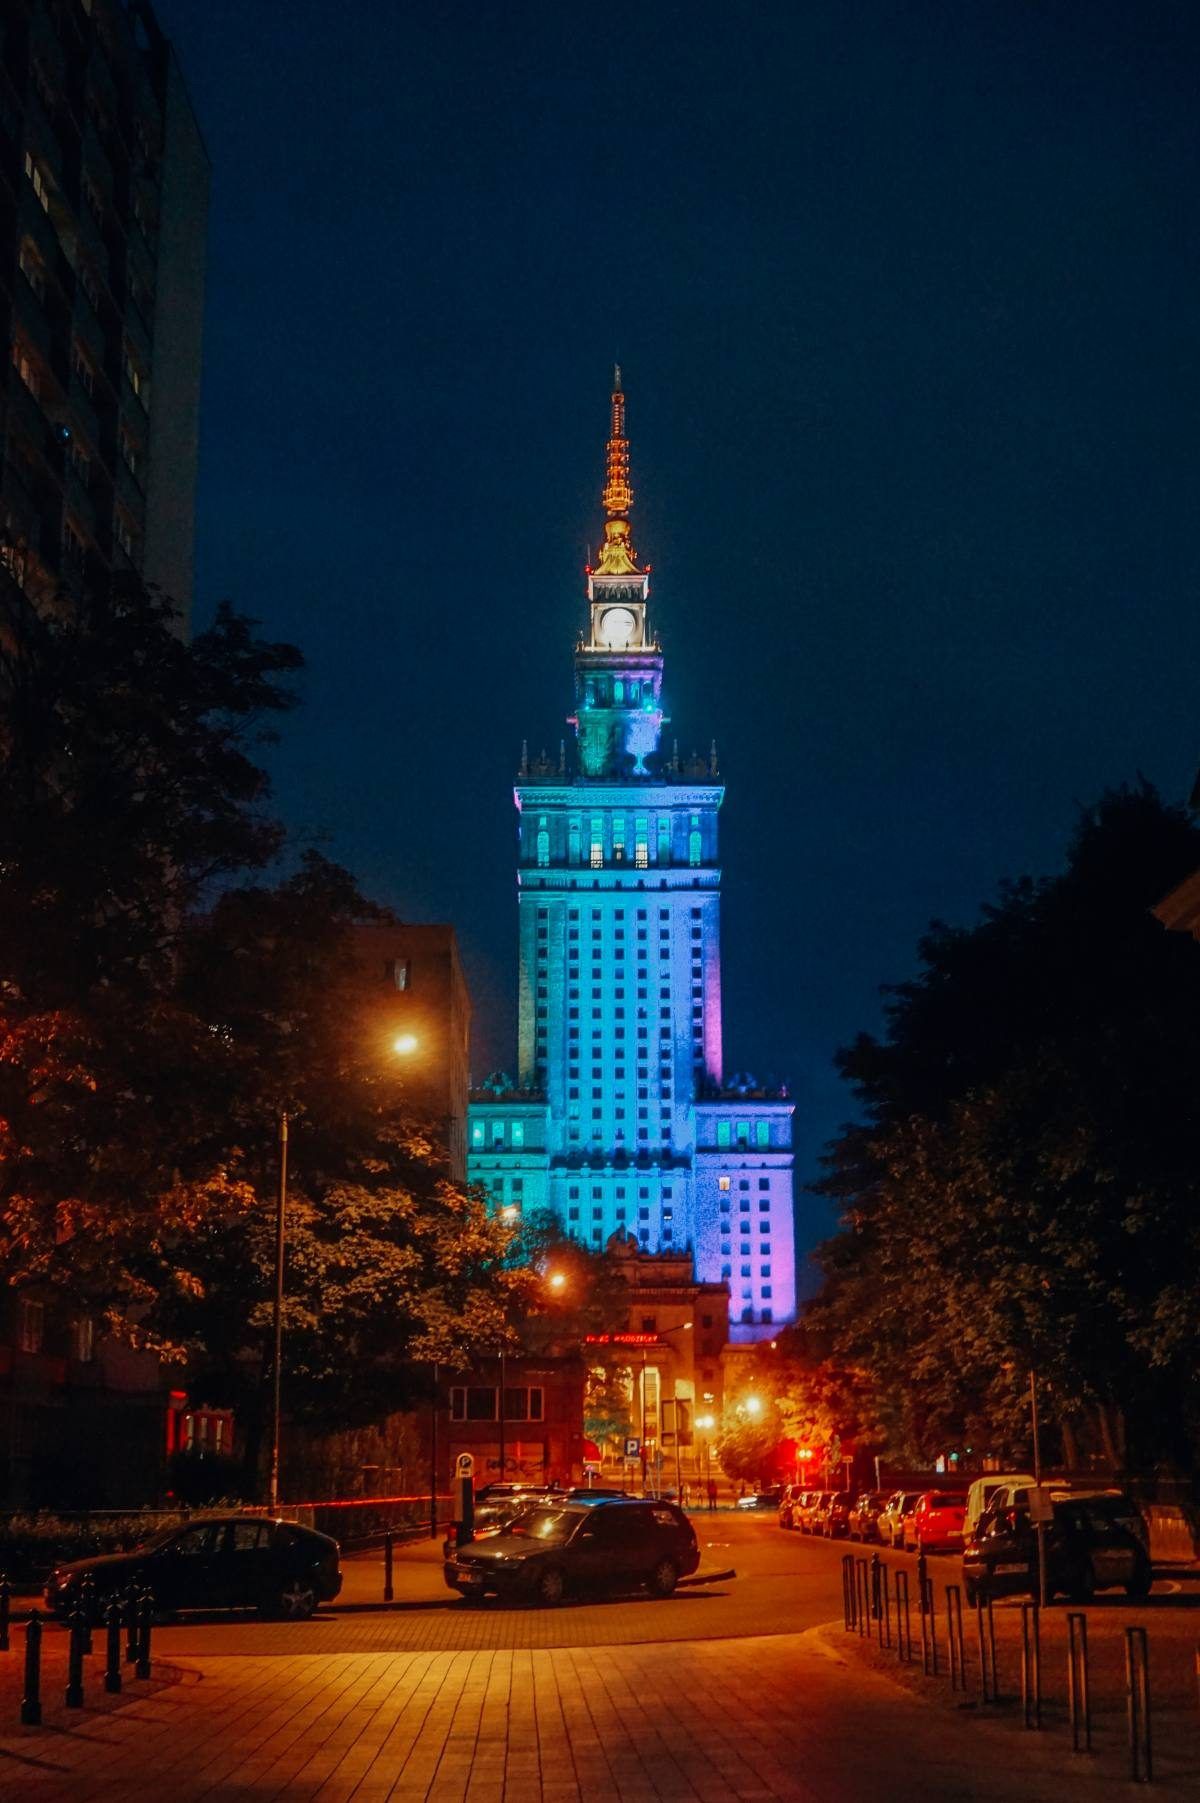 Palace of Culture night